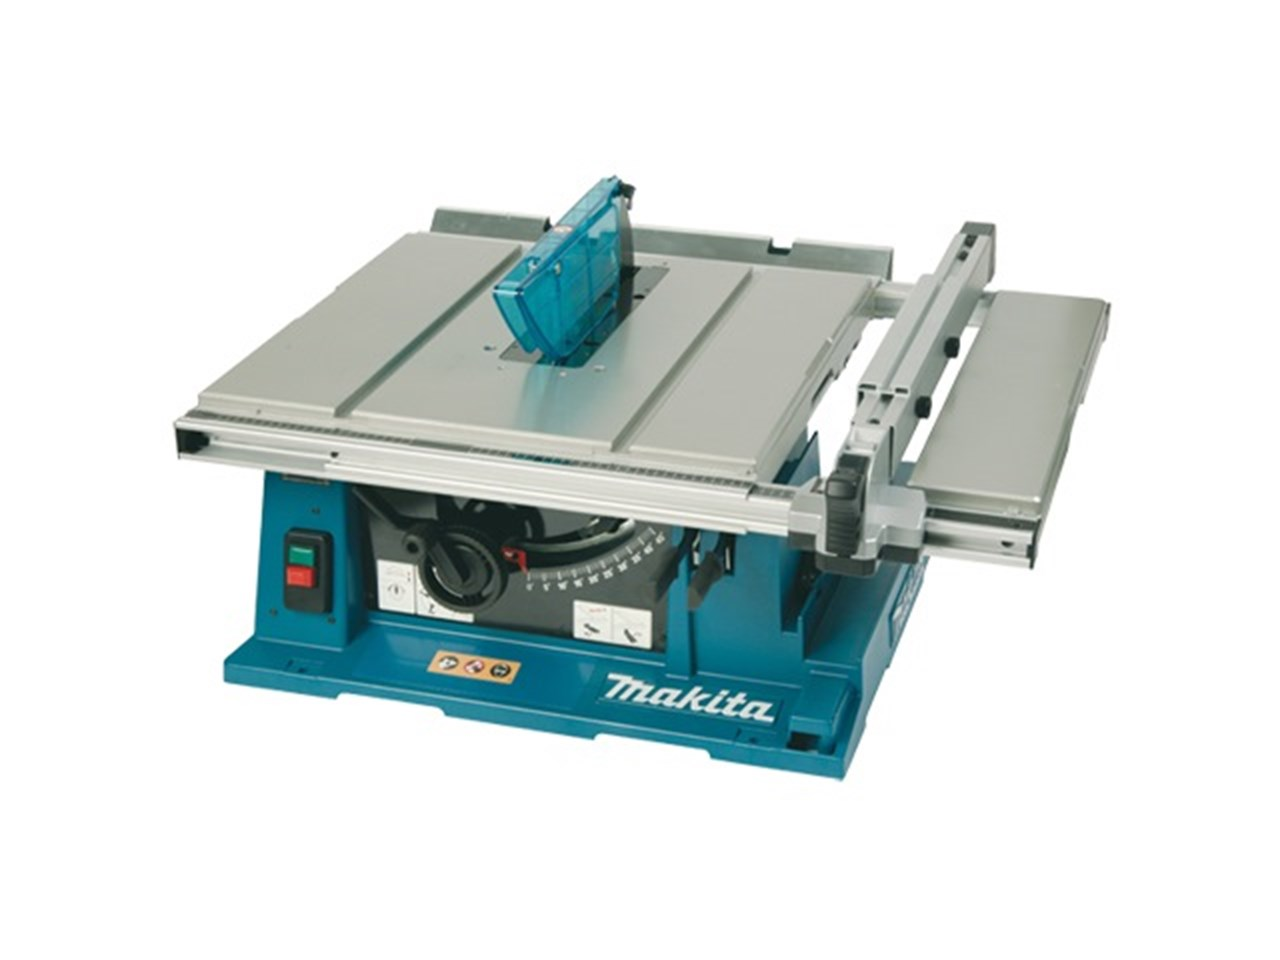 Makita 2704 110v 260mm Table Saw